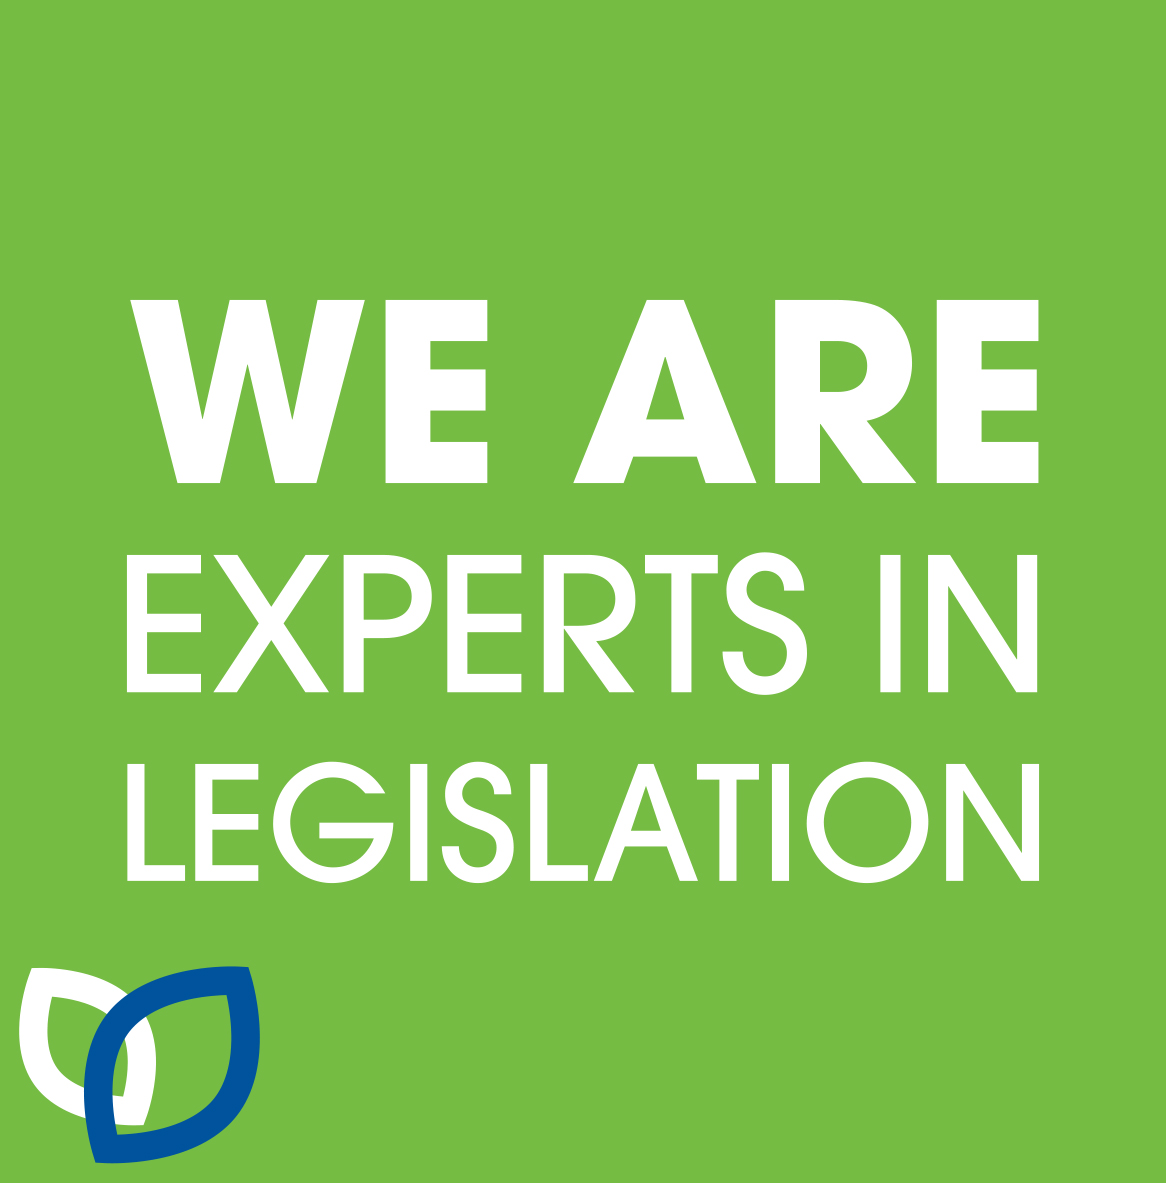 We are experts in Legislation - waste disposal